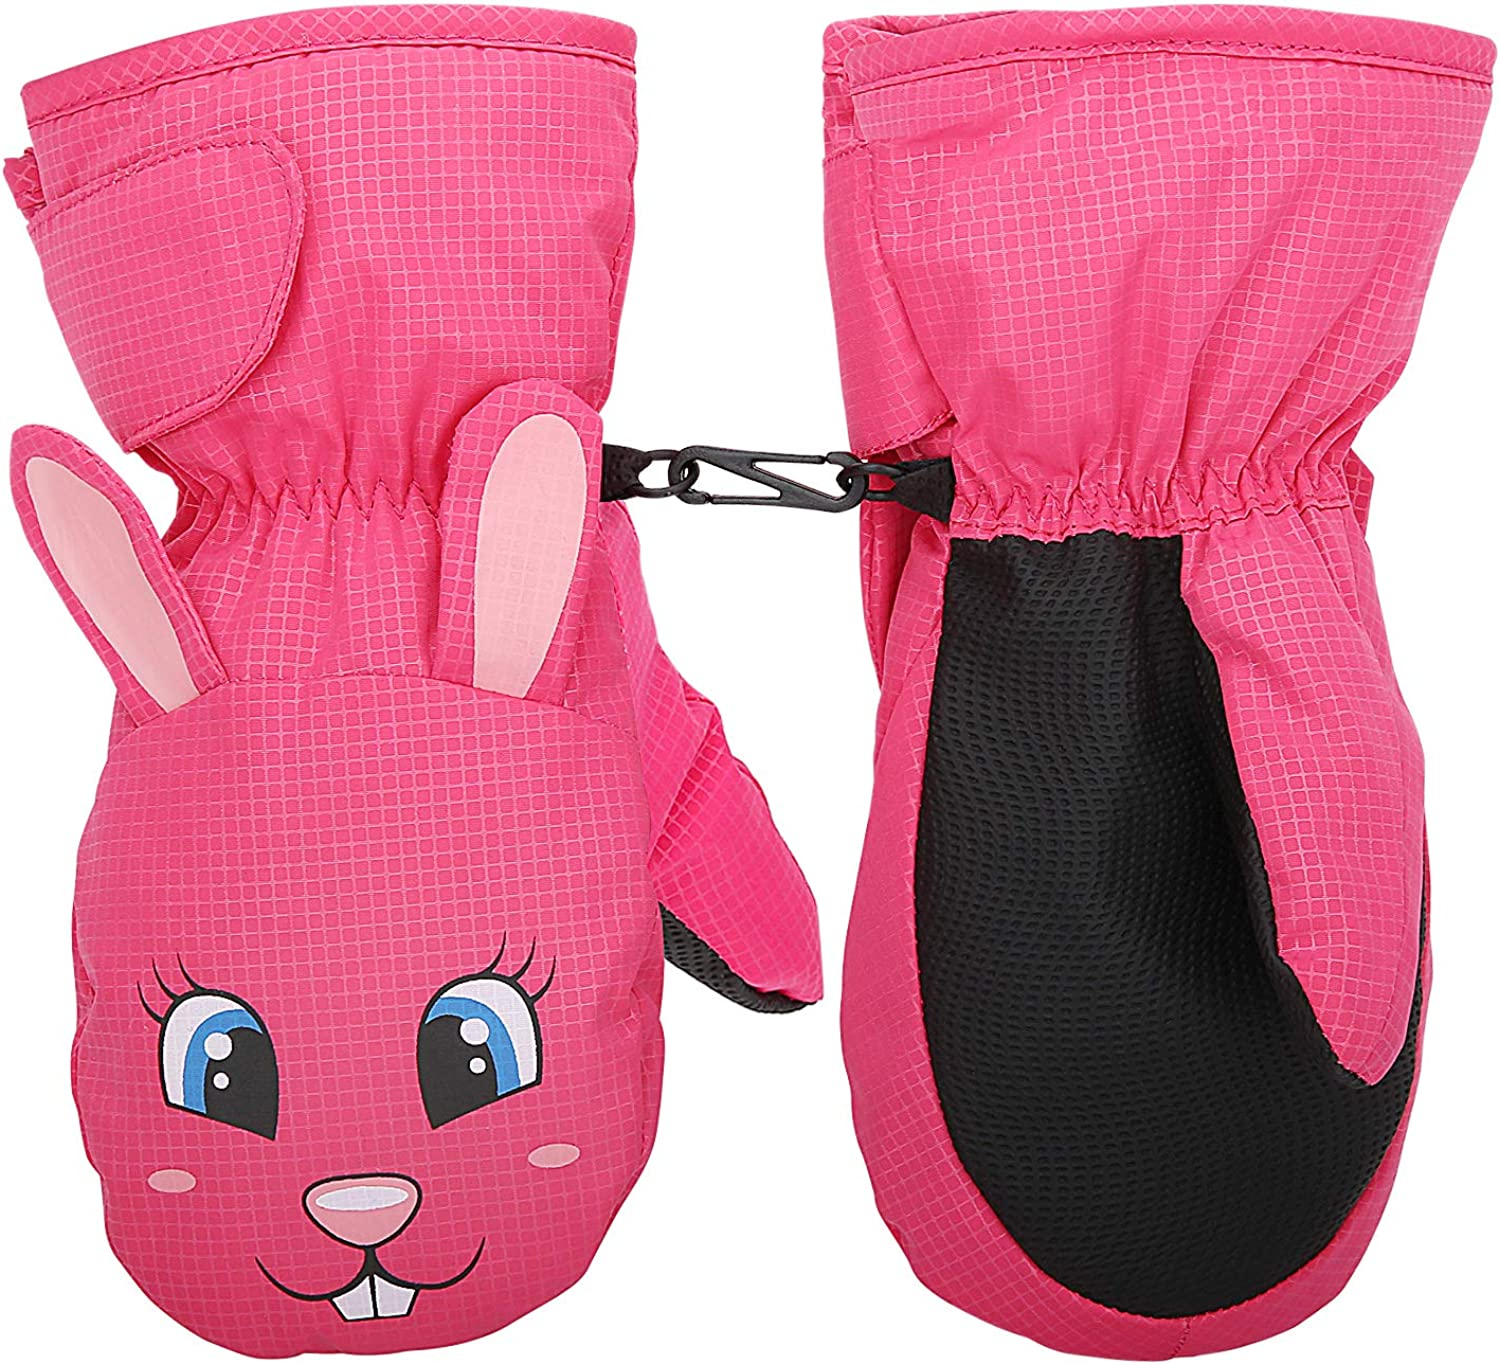 MoKo Waterproof Cold Weather Thermal Winter Ski Gloves Mittens for Kids Toddlers